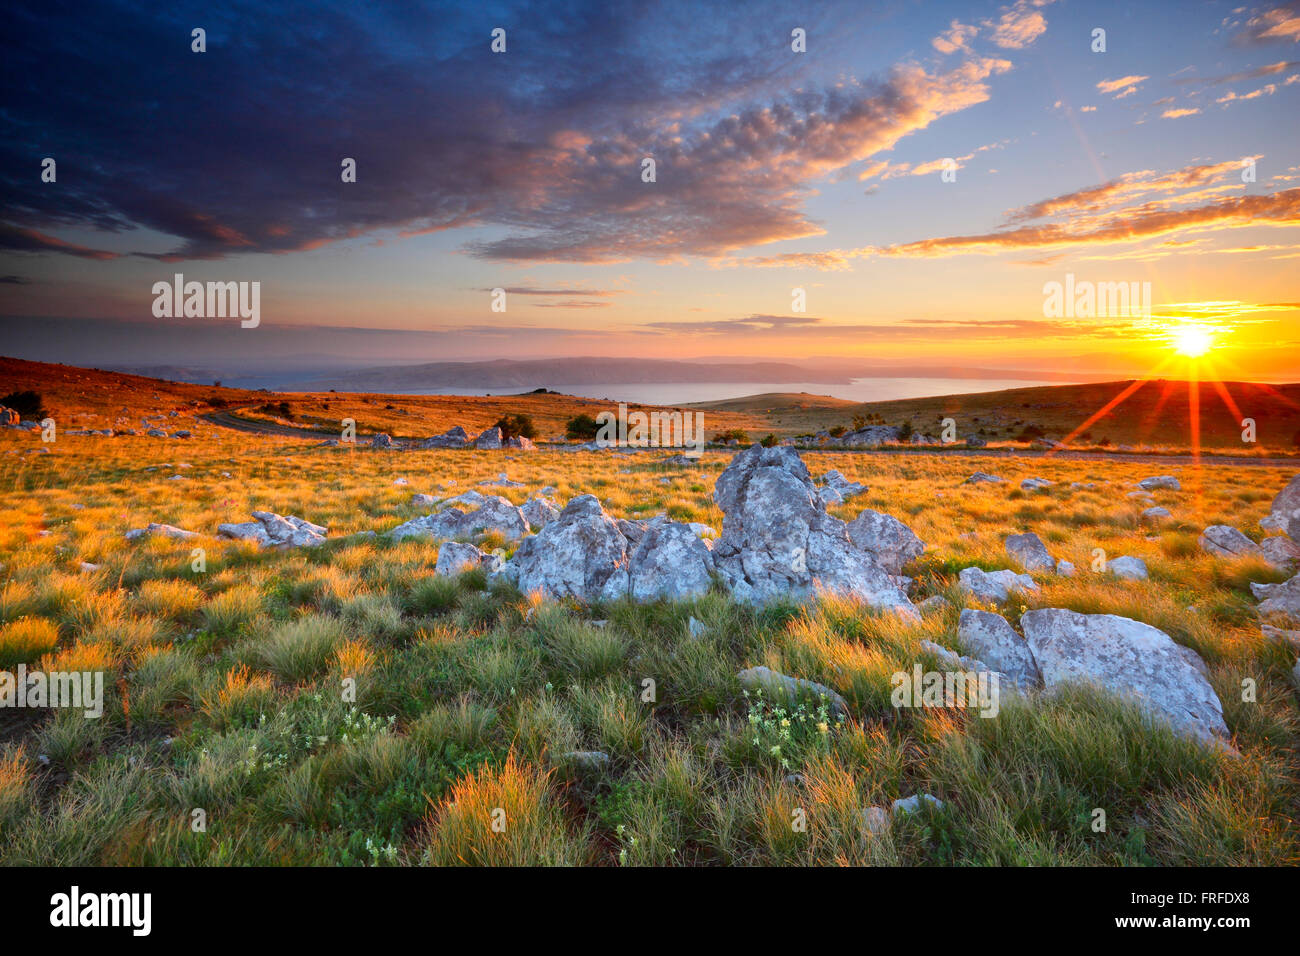 Sunset mountain landscape, View to island Krk from Velebit in Croatia. - Stock Image